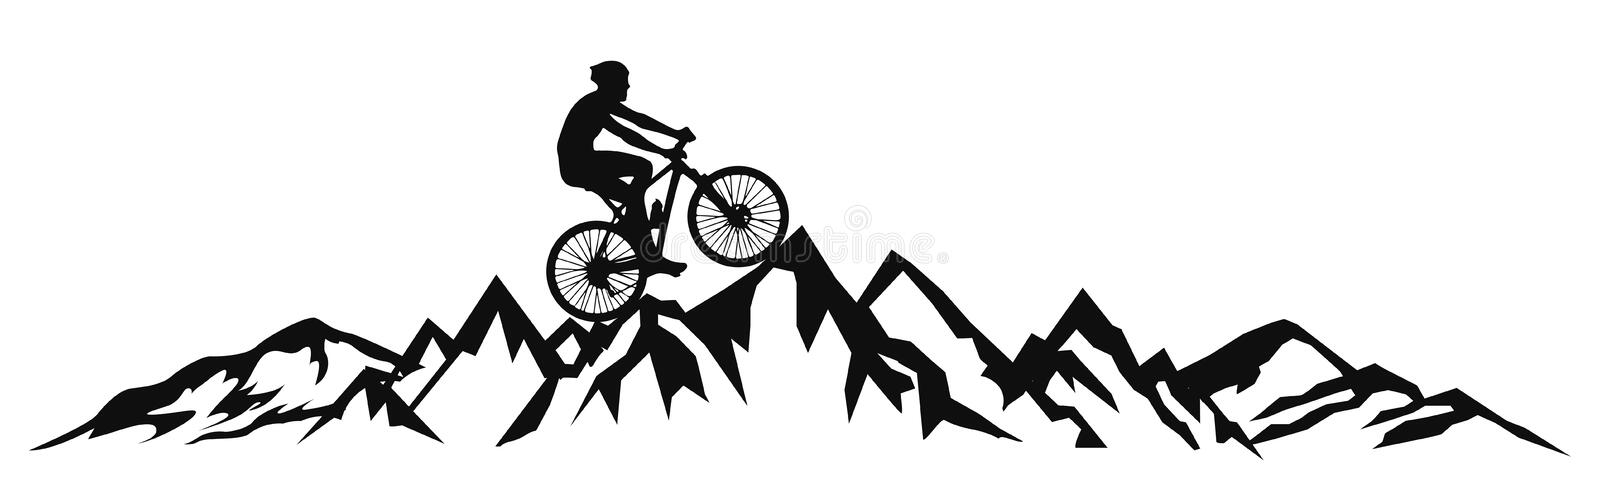 Cyclist in the mountains - vector royalty free illustration